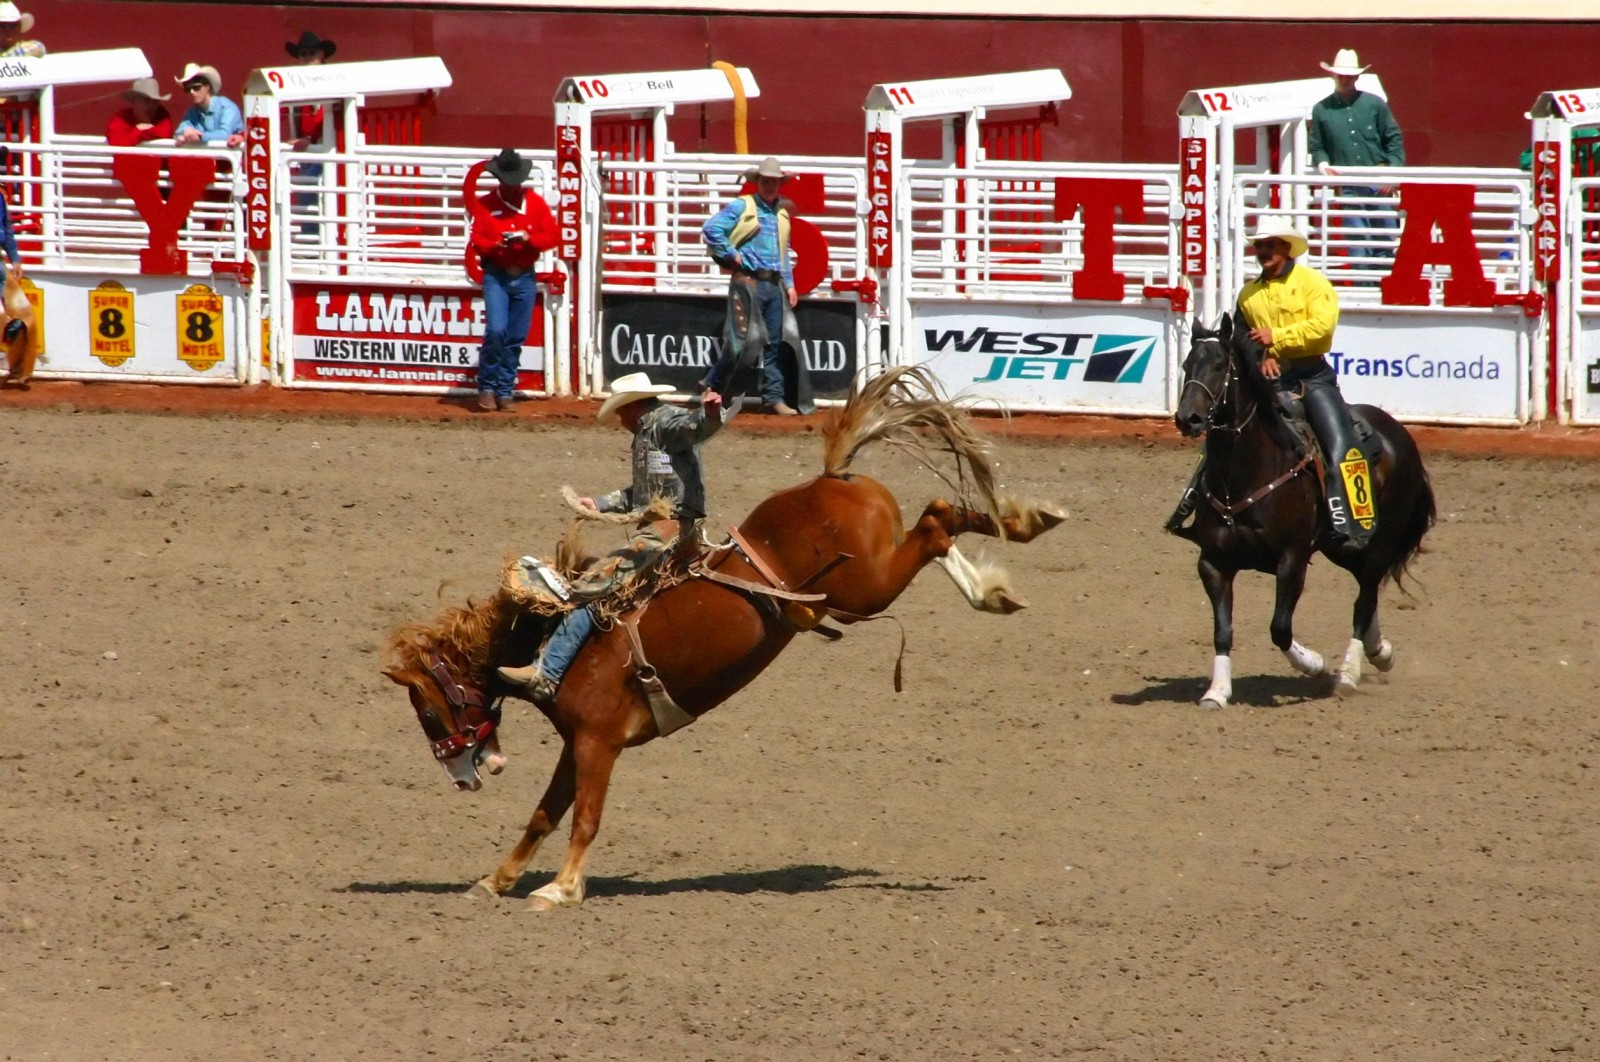 cowboy-on-bucking-bronco-in-calgary-stampede-alberta-canada-1600x1062